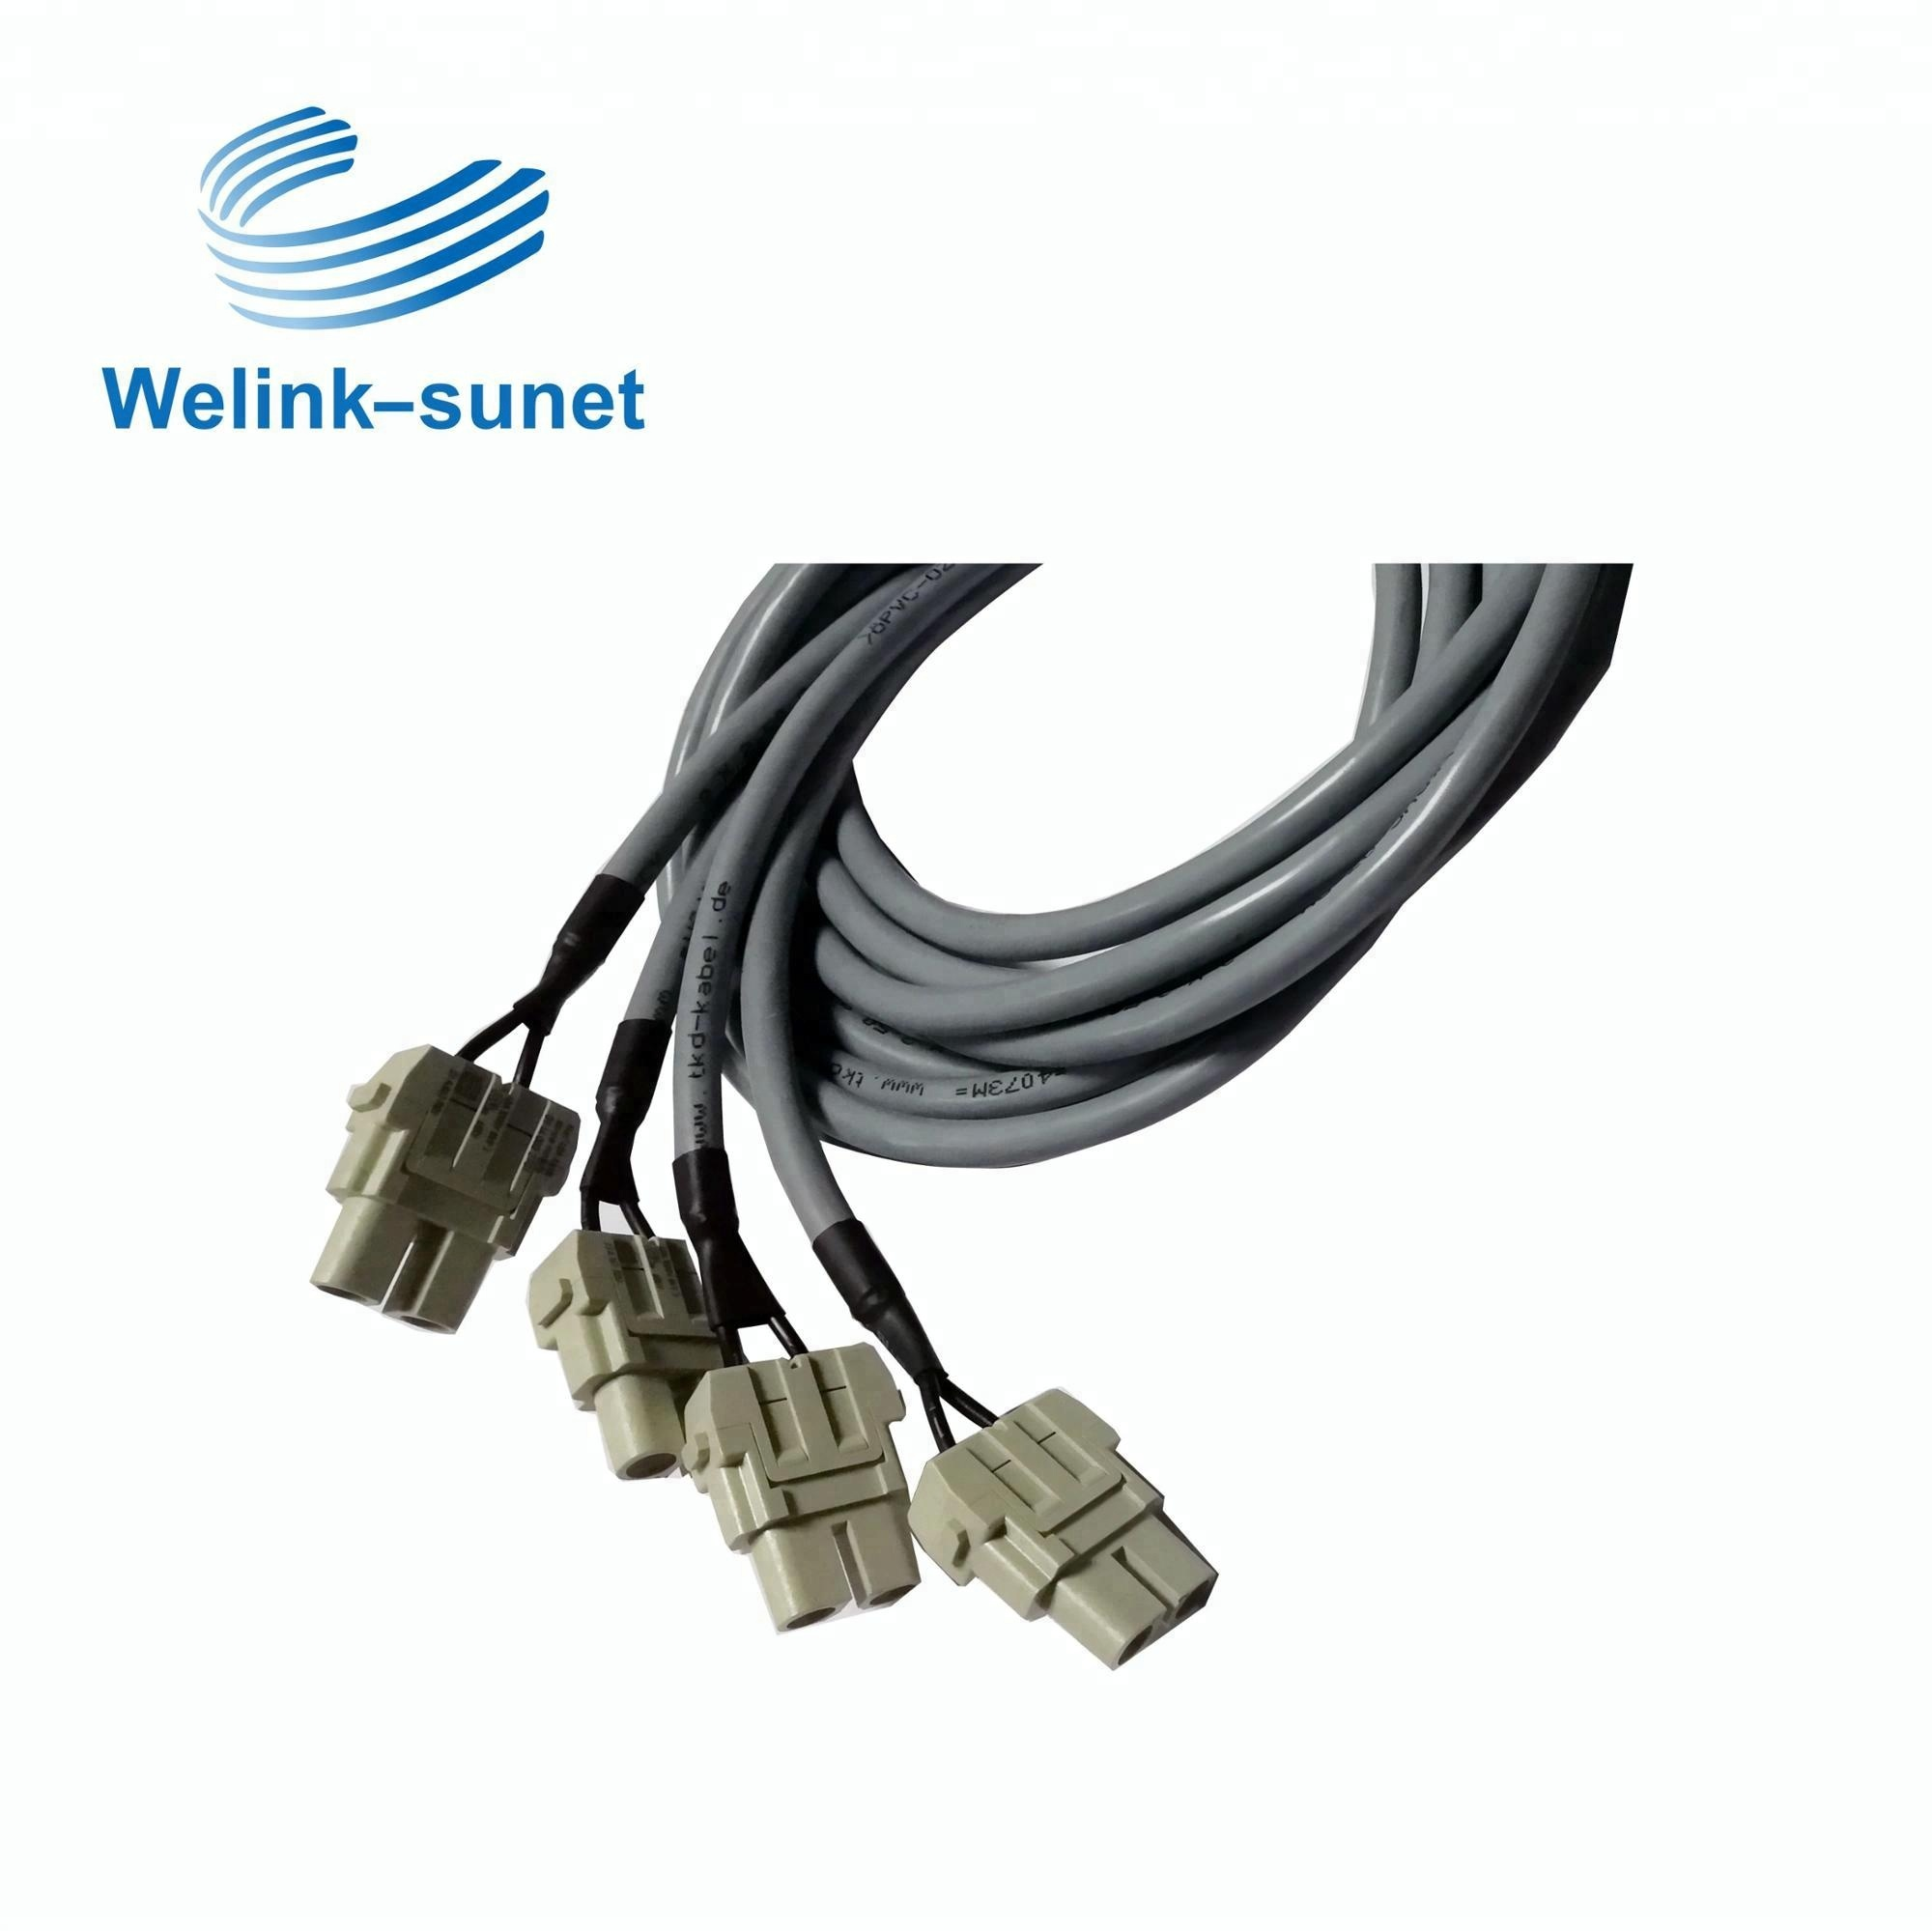 Rj45 Wire Harness Suppliers And Manufacturers At Wiring Double Socket